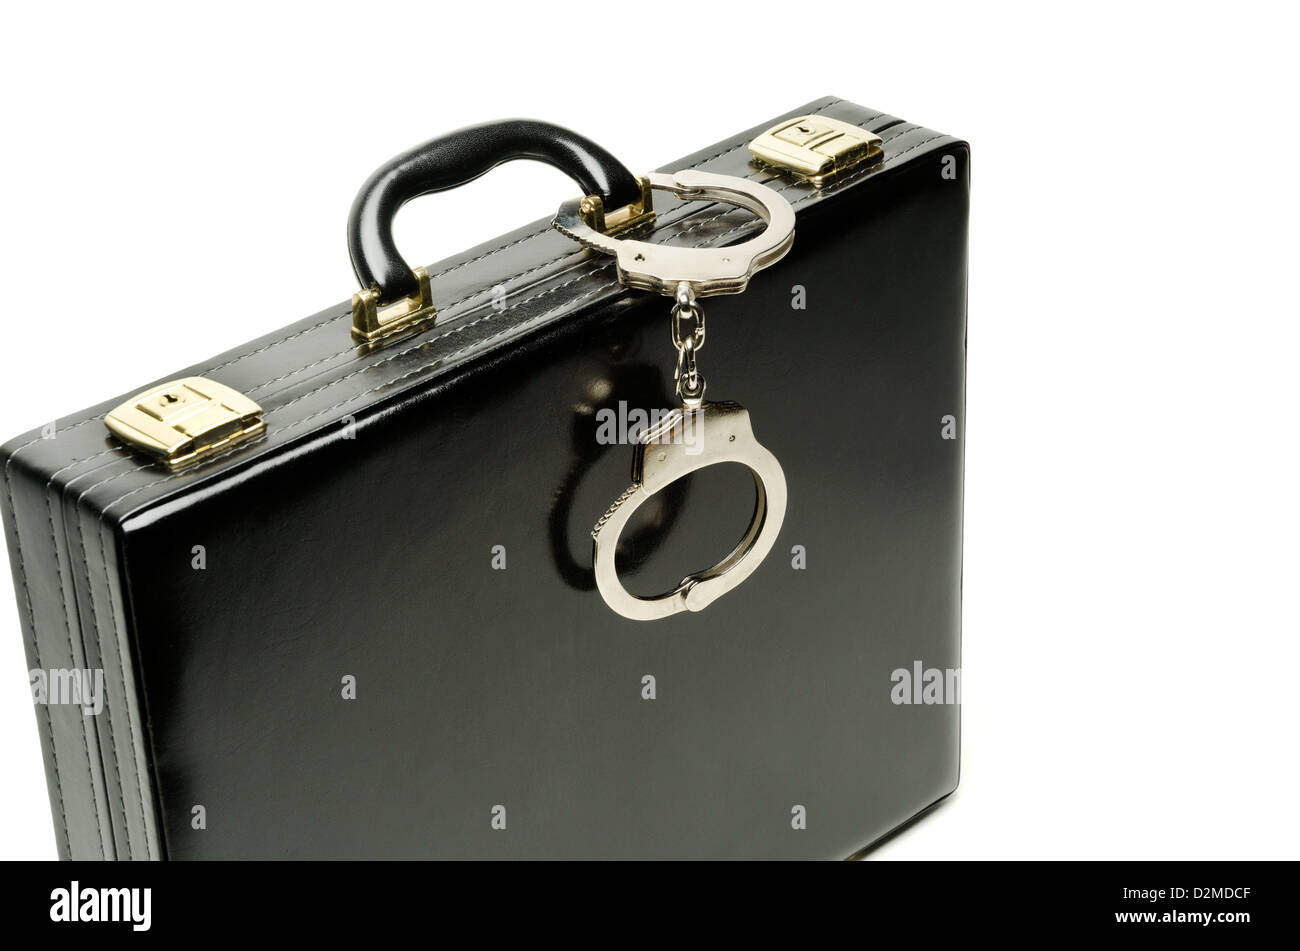 Briefcase and handcuffs - Stock Image